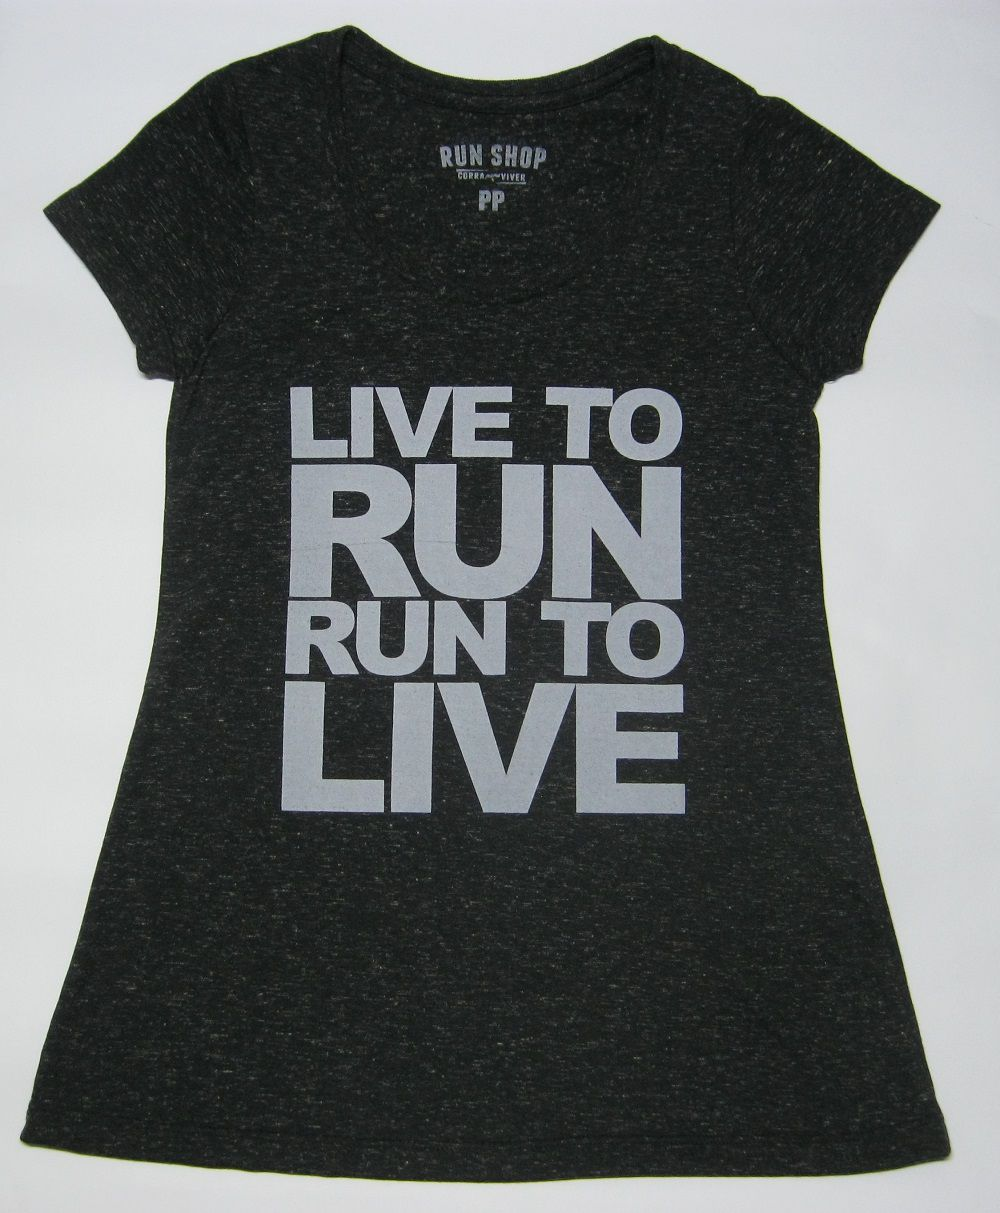 Camisa RUN SHOP - Live to run. Run to live - Feminina